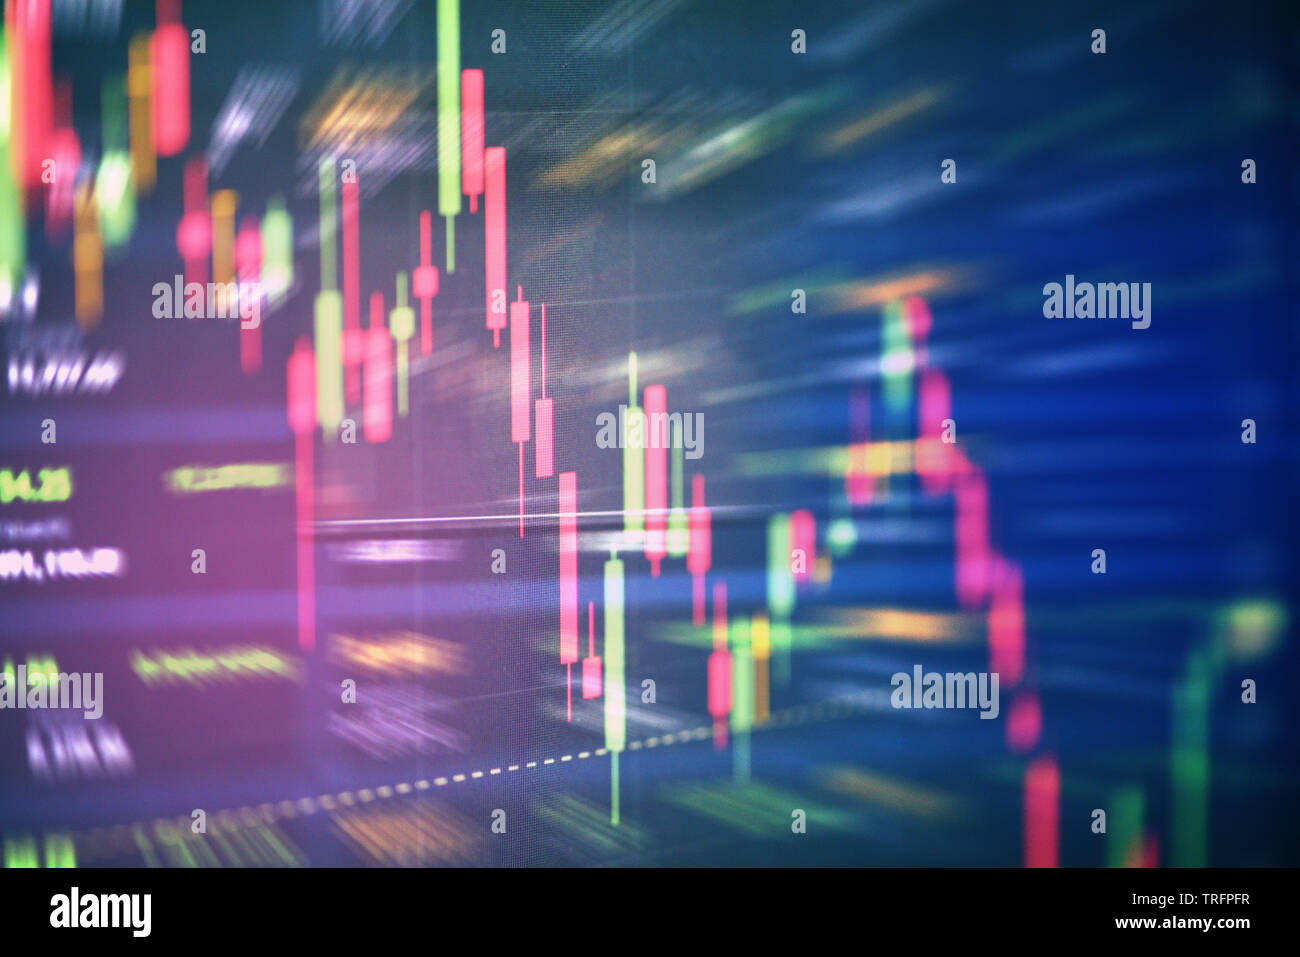 Stock crisis red price drop down chart fall / Stock market exchange analysis or forex graph business and finance crash money losing moving economic in - Stock Image